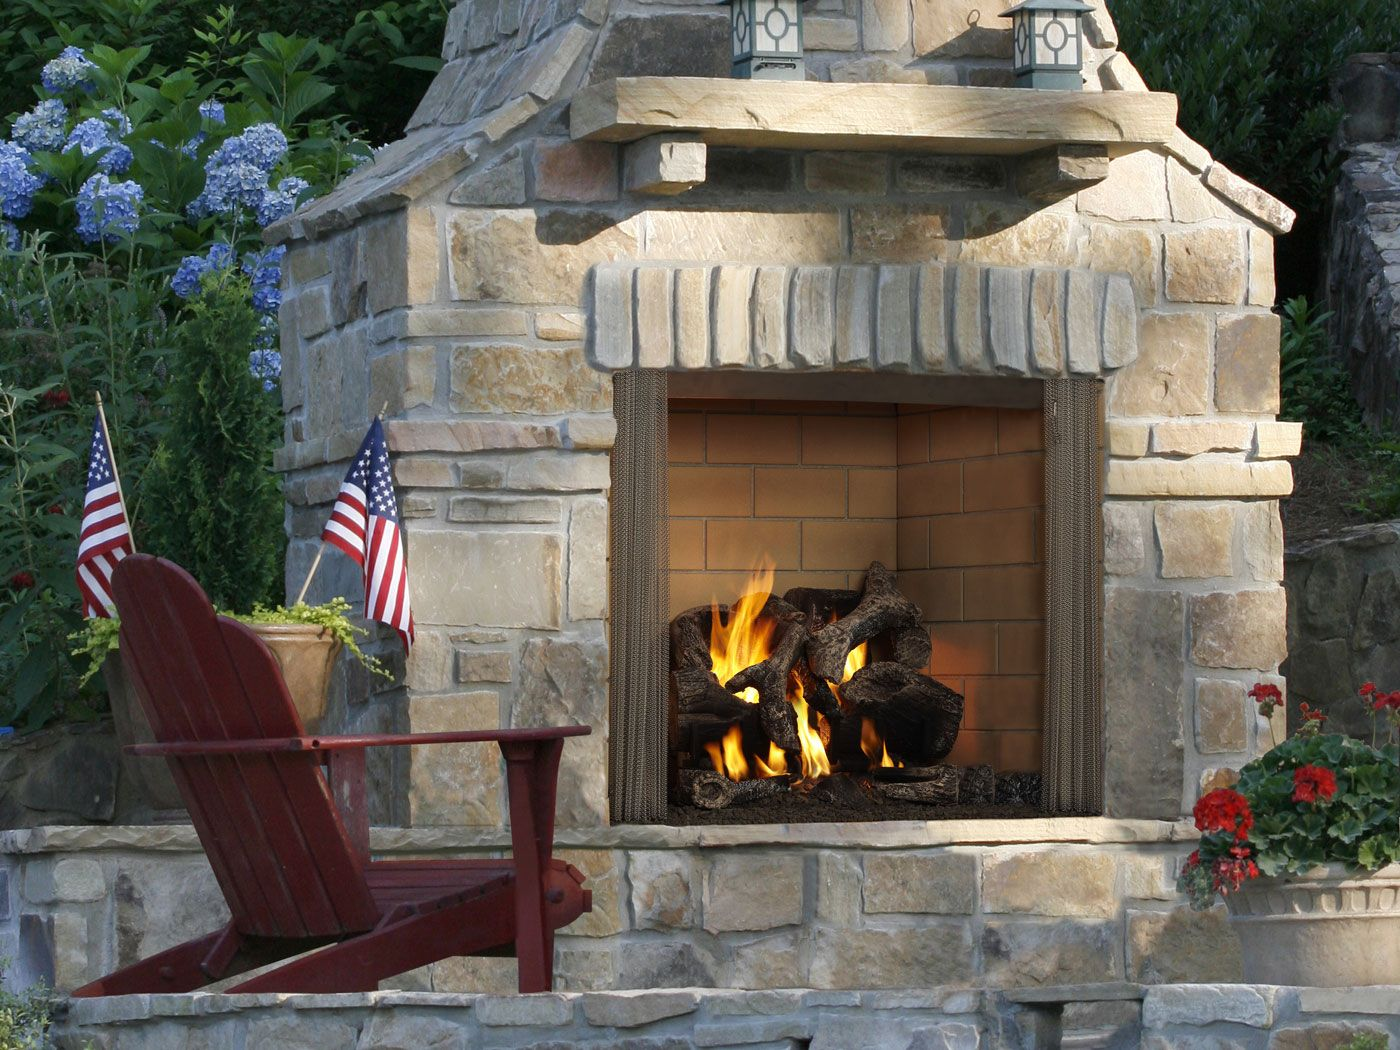 Outdoor Lifestyles Castlewood Wood Fireplace  heatnglo outdoor large  fireplaceOutdoor Lifestyles Castlewood Wood Fireplace  heatnglo outdoor  . Large Outdoor Fireplace. Home Design Ideas